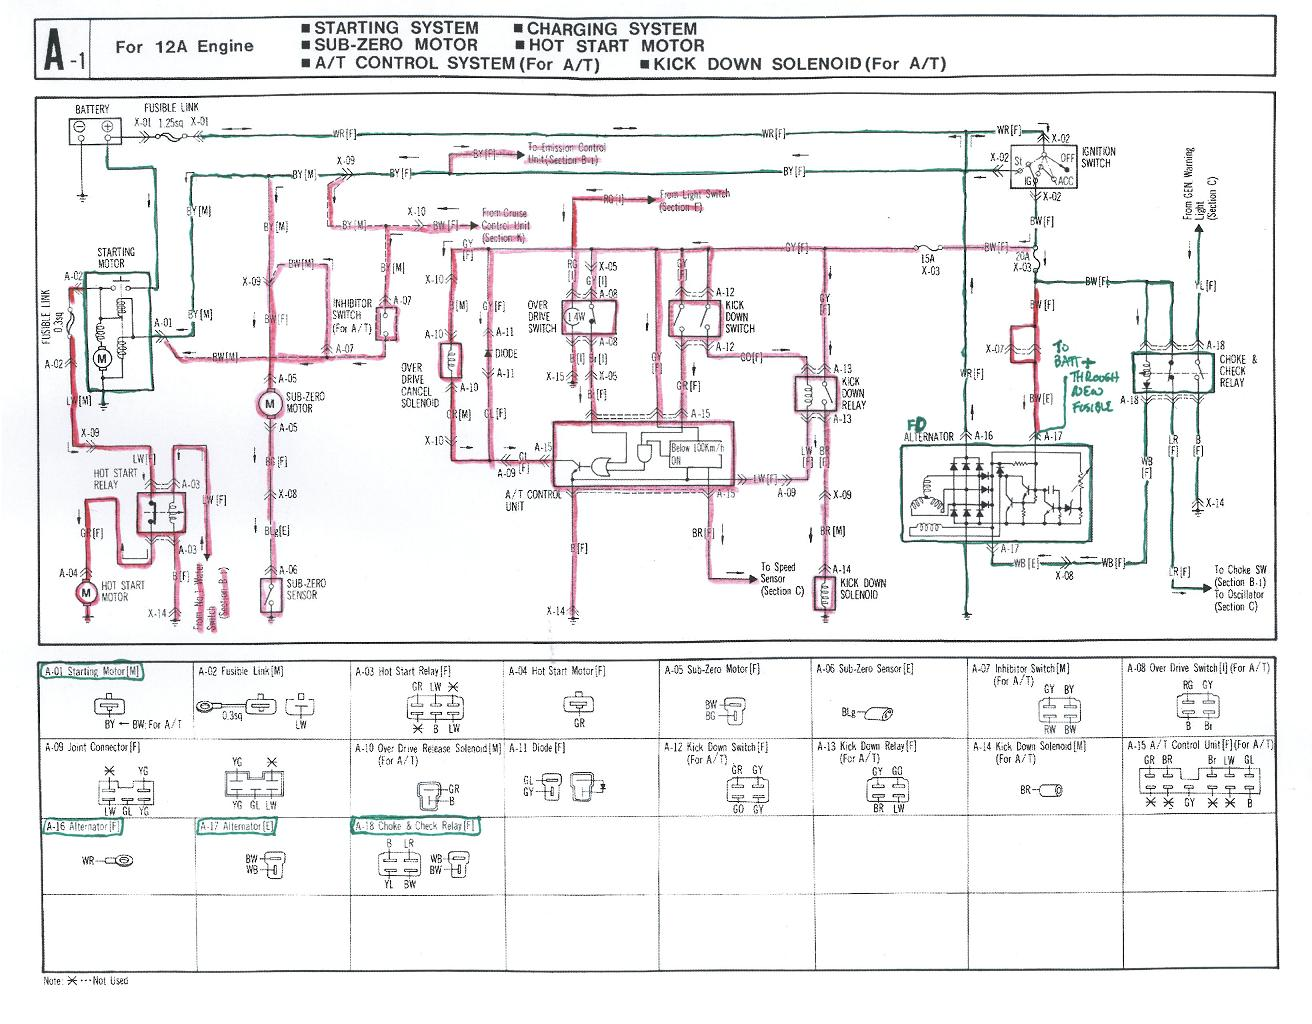 Fl70 Fuse Box Diagram 97 Auto Electrical Wiring Fs Schematic 400 130520062 Old Fashioned Peterbilt 389 Sketch